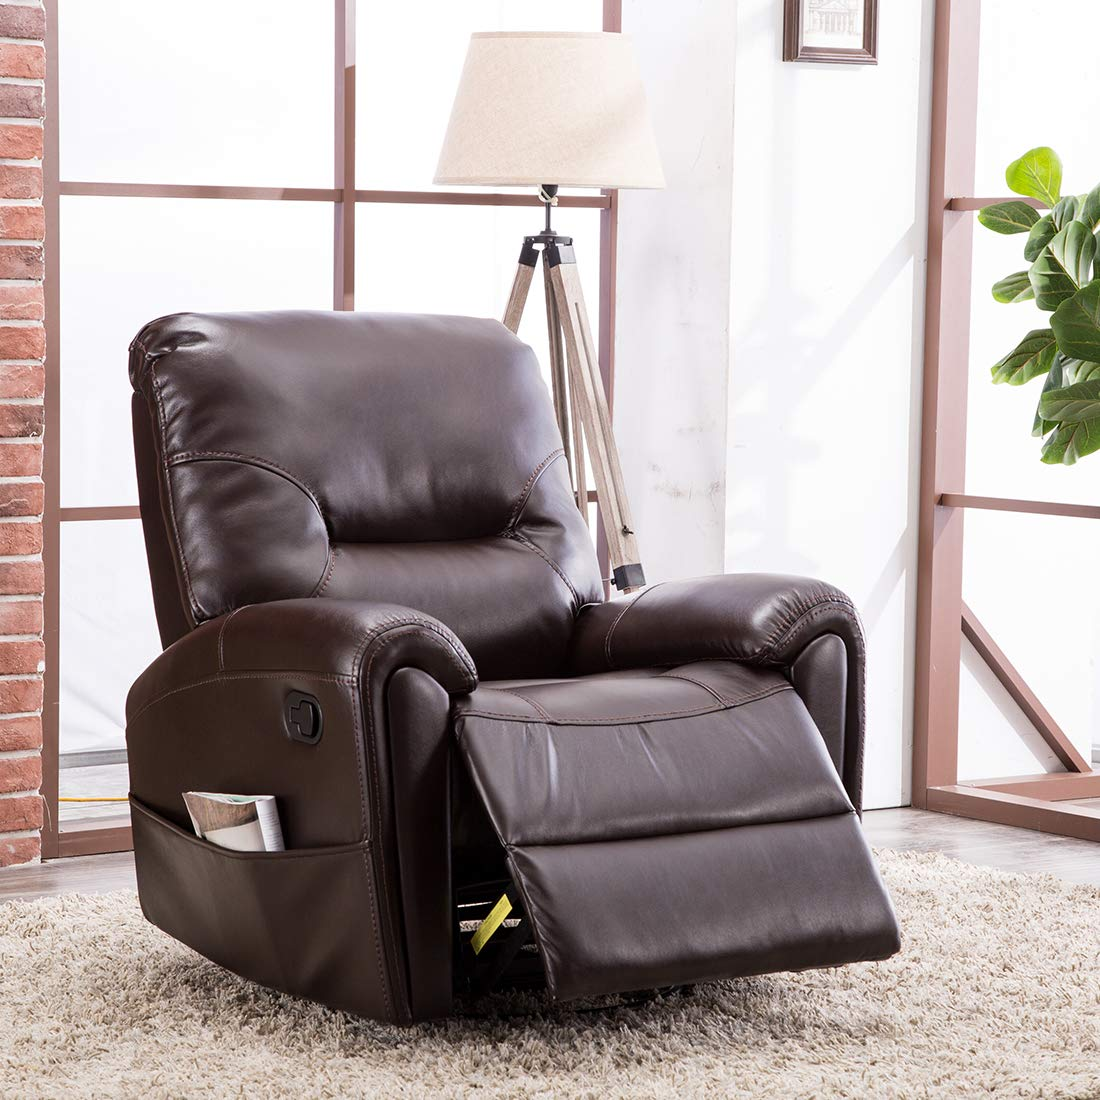 Canmov breathable bonded leather recliner living room chair classic and traditional single seat sofa manual swivel recliner chair with overstuffed arms and